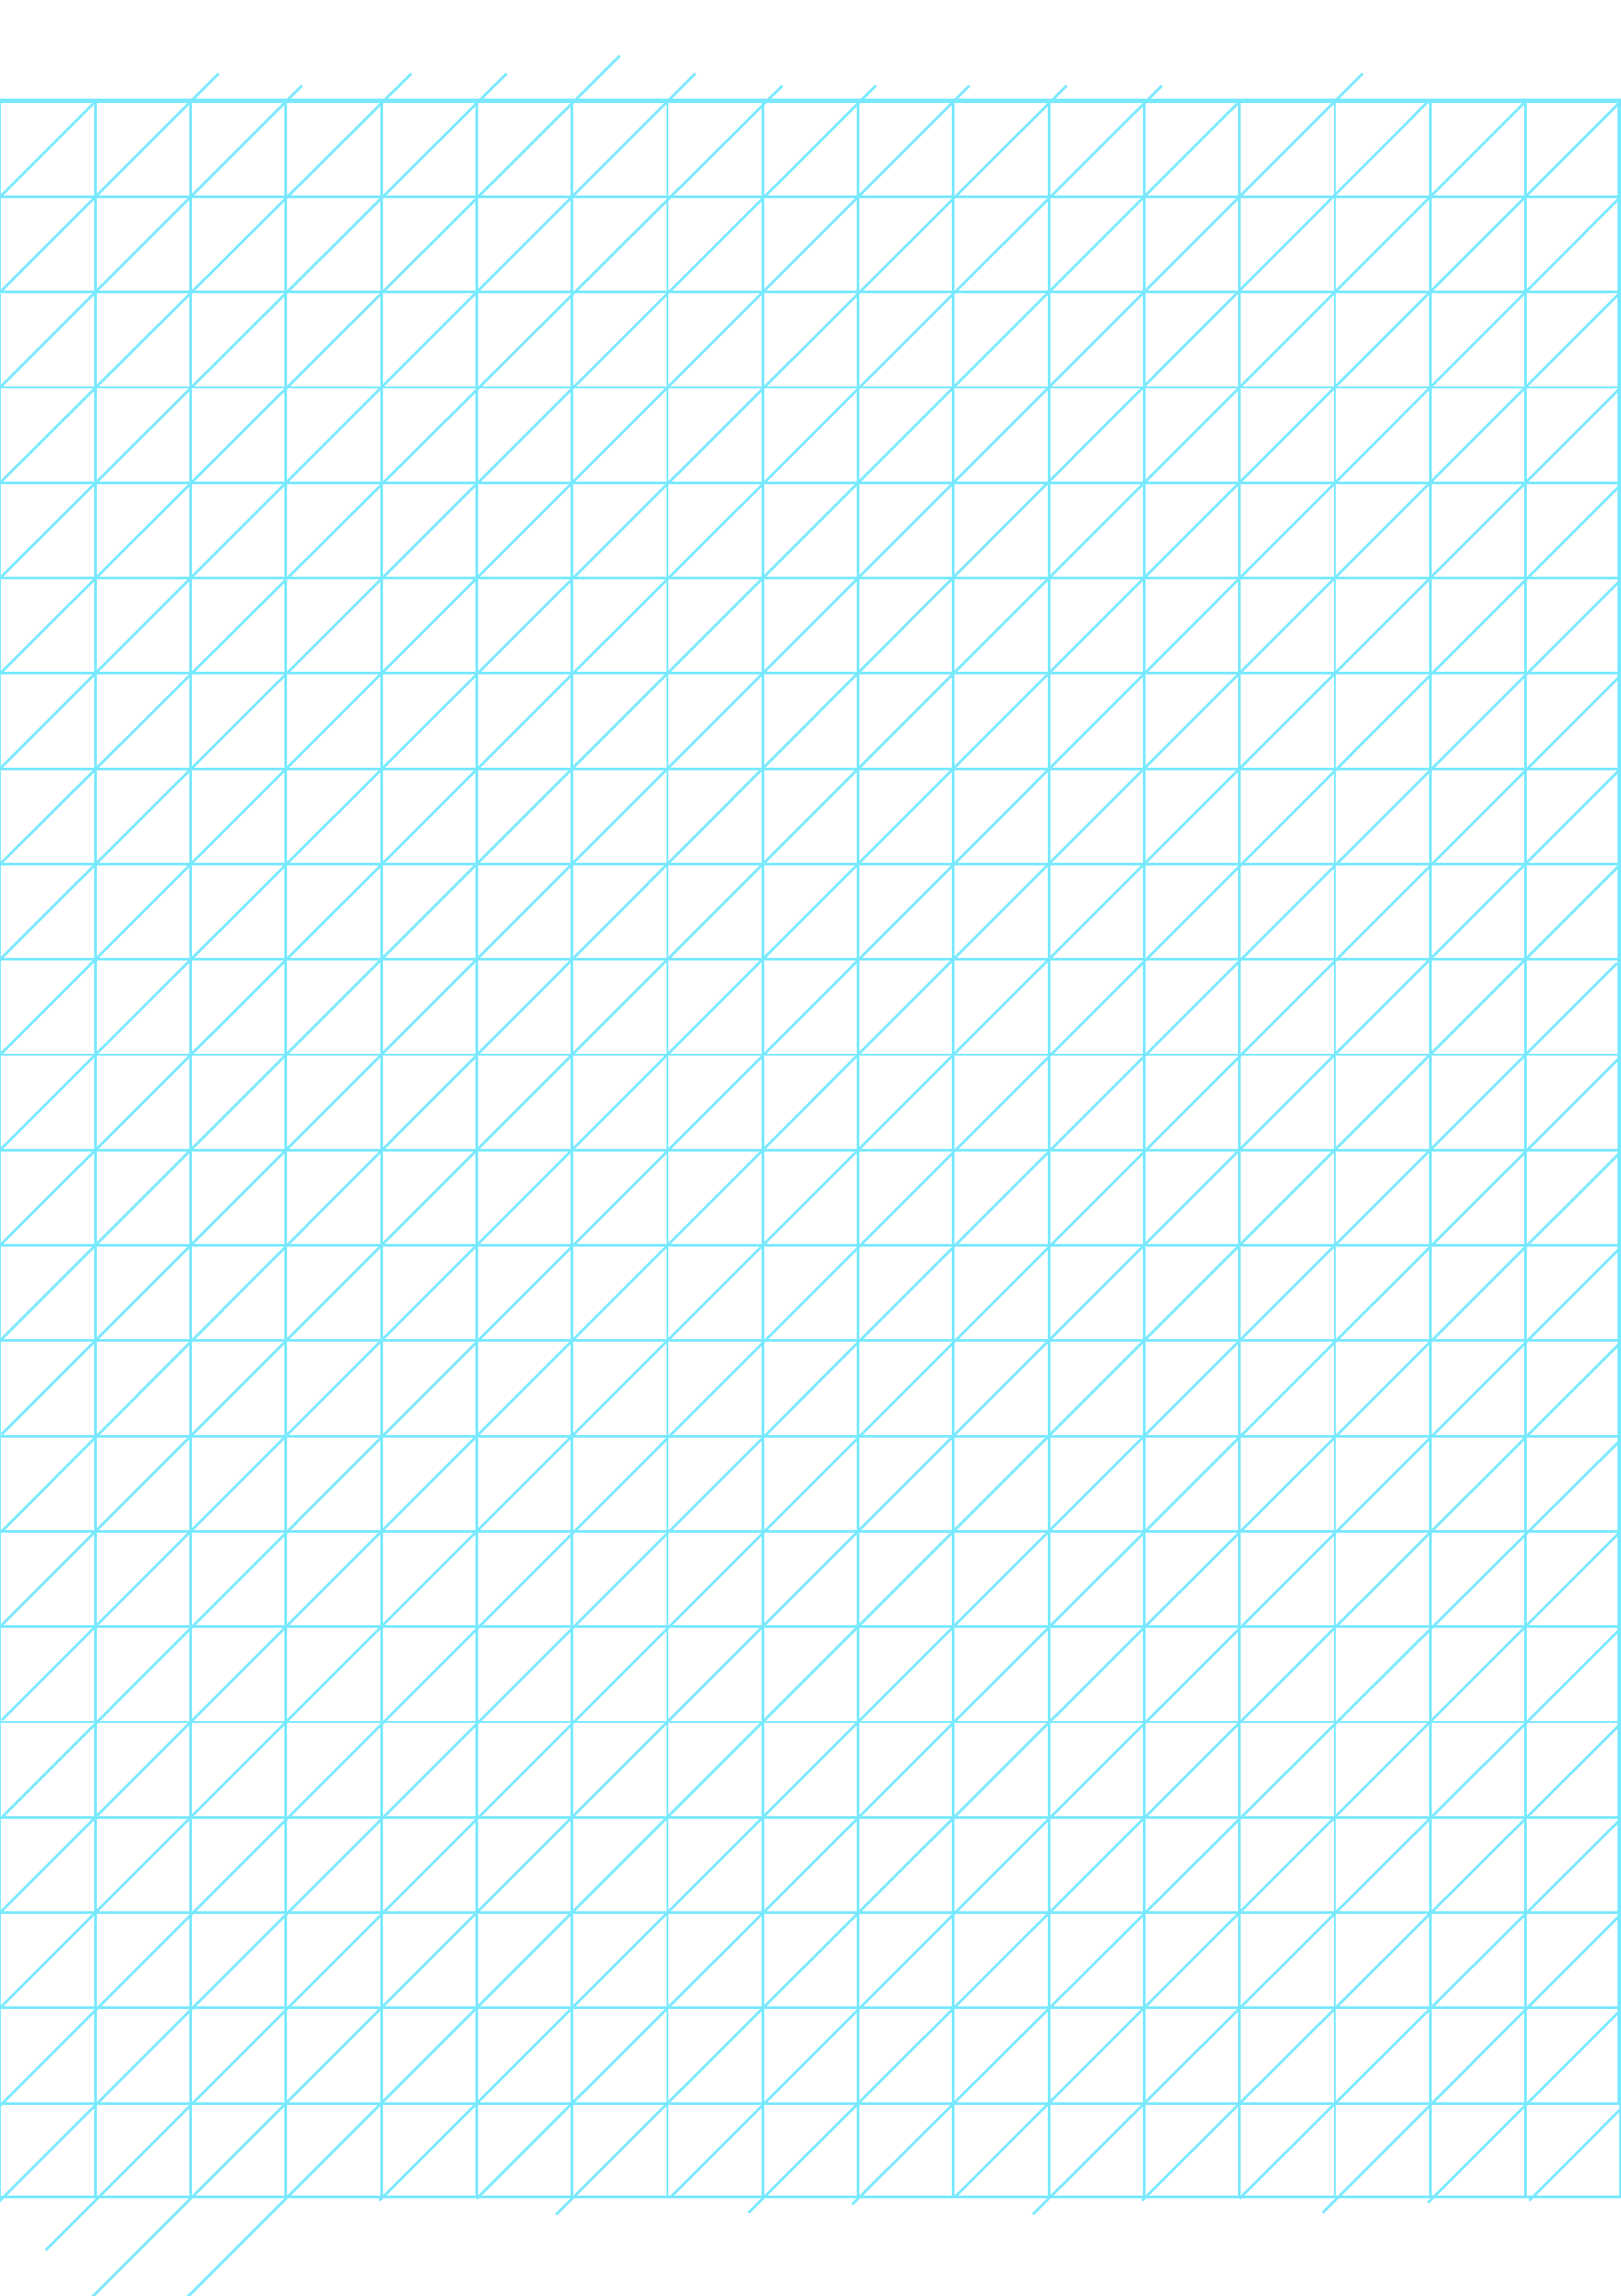 oblique graph paper 0 5 inch free download